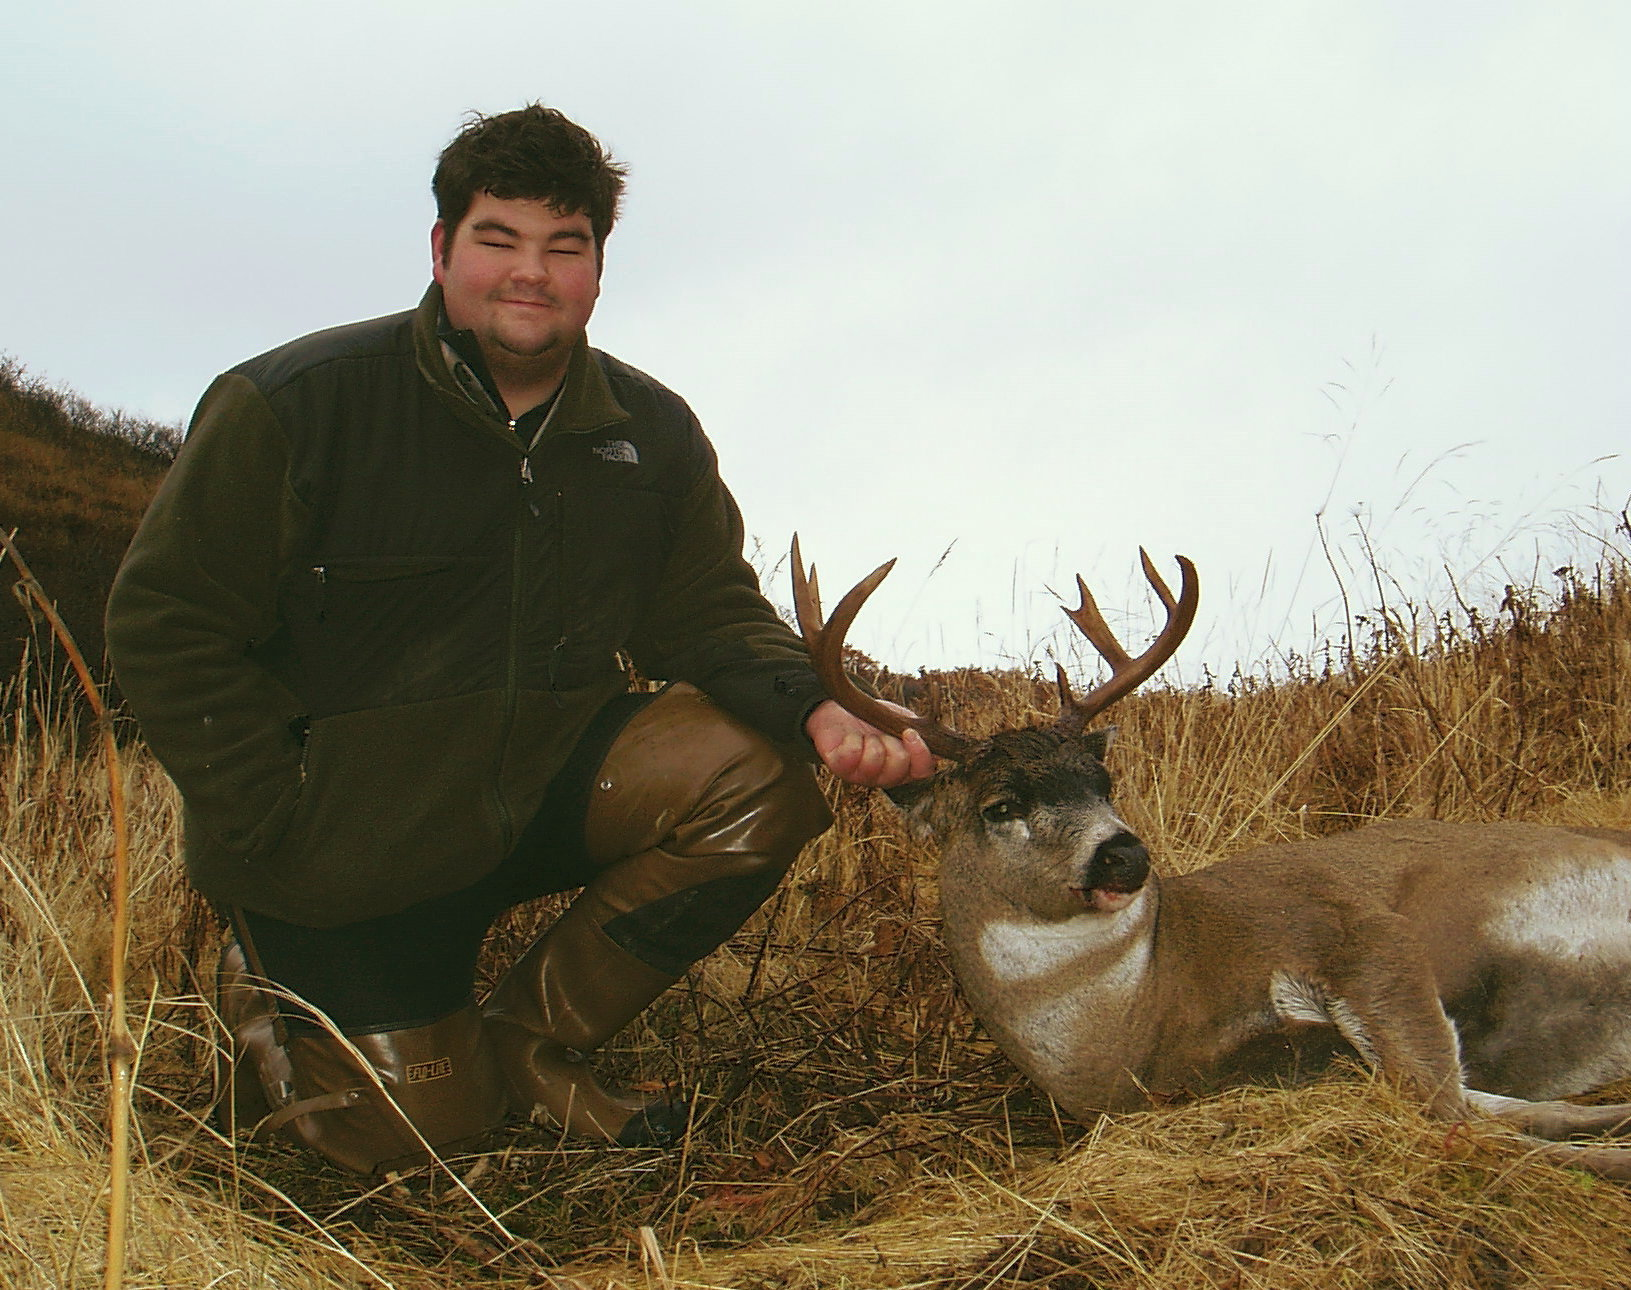 Greg with his dandy deer that scored 101 B&C points,